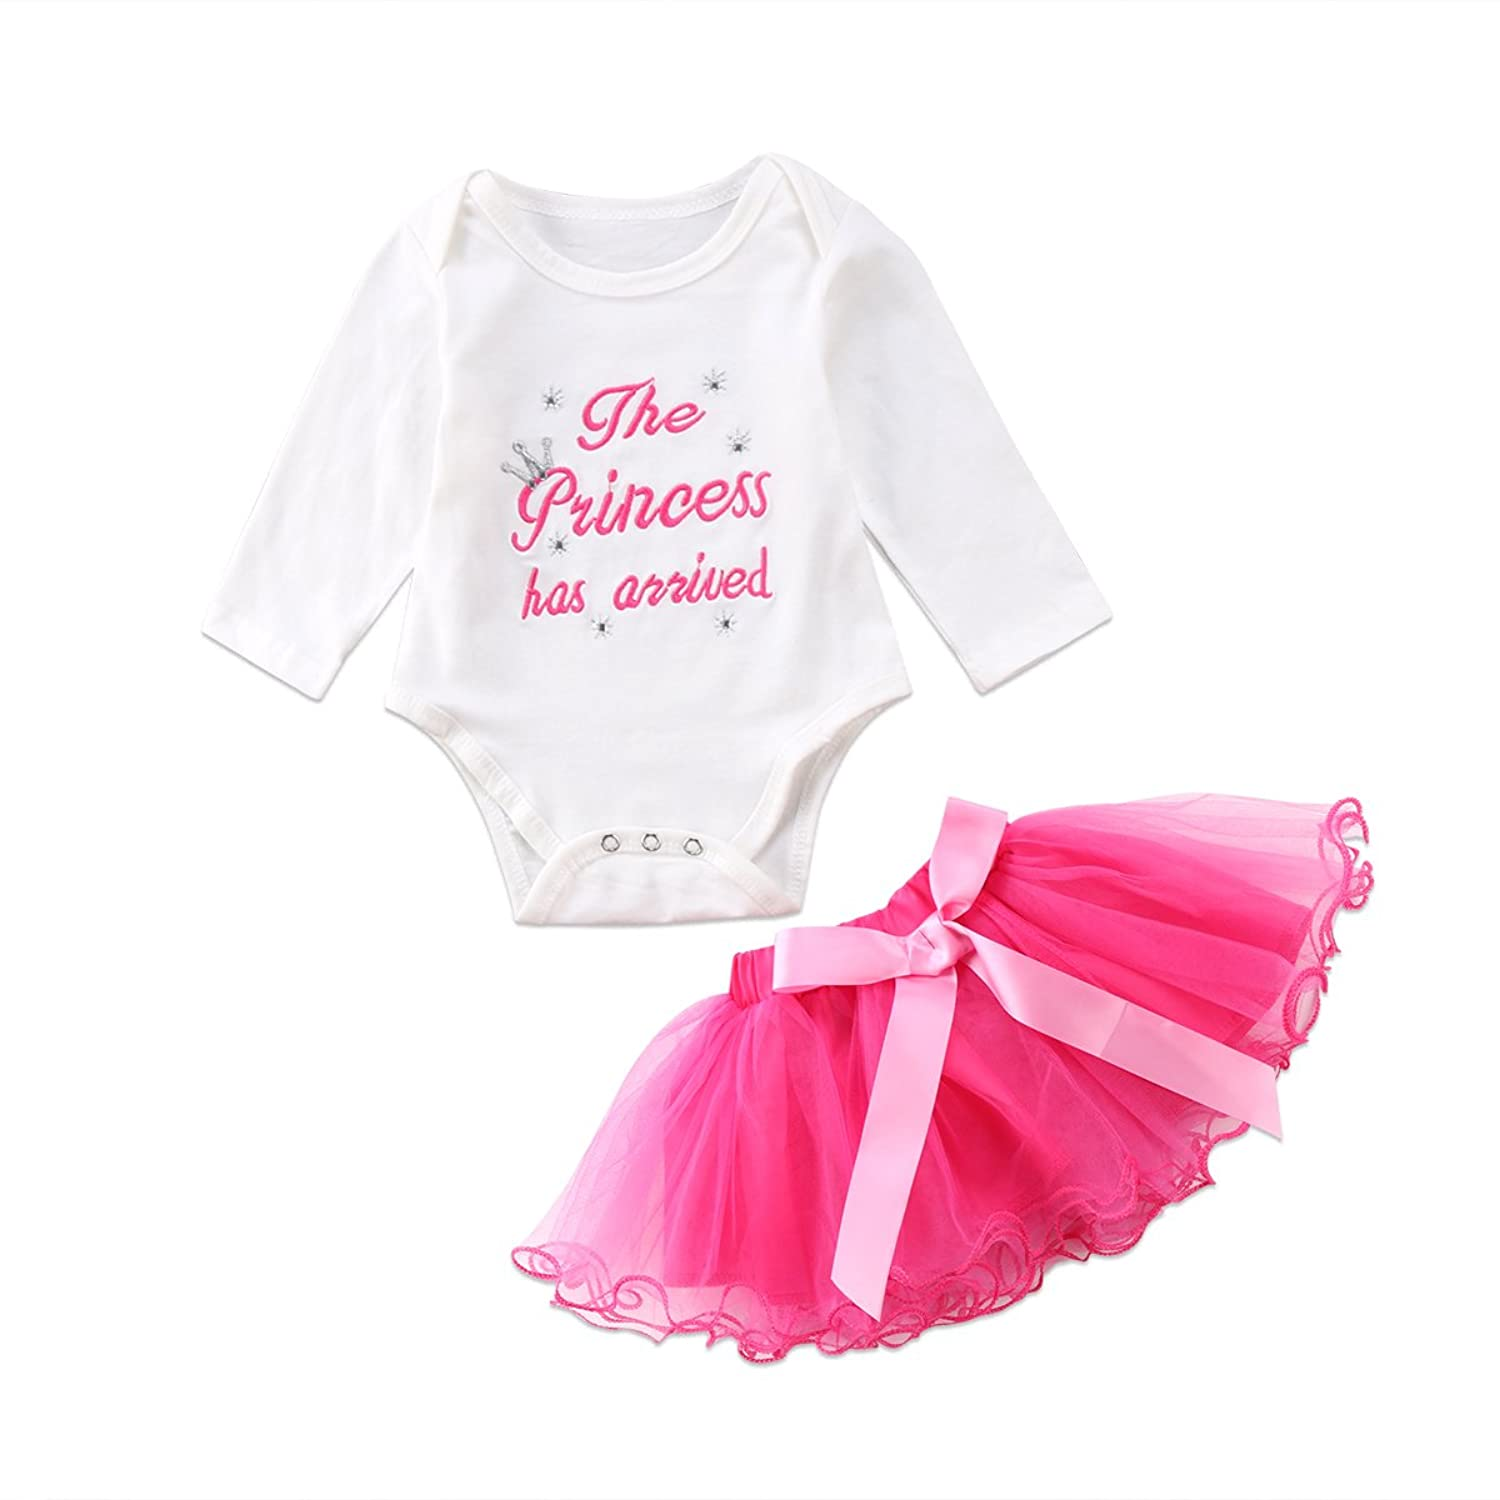 162658d3e06   The pricess has arrived   baby girls clothes set. White long sleeve romper  with pink saying on the top. Pink bowknot reffle tutu skirt ...